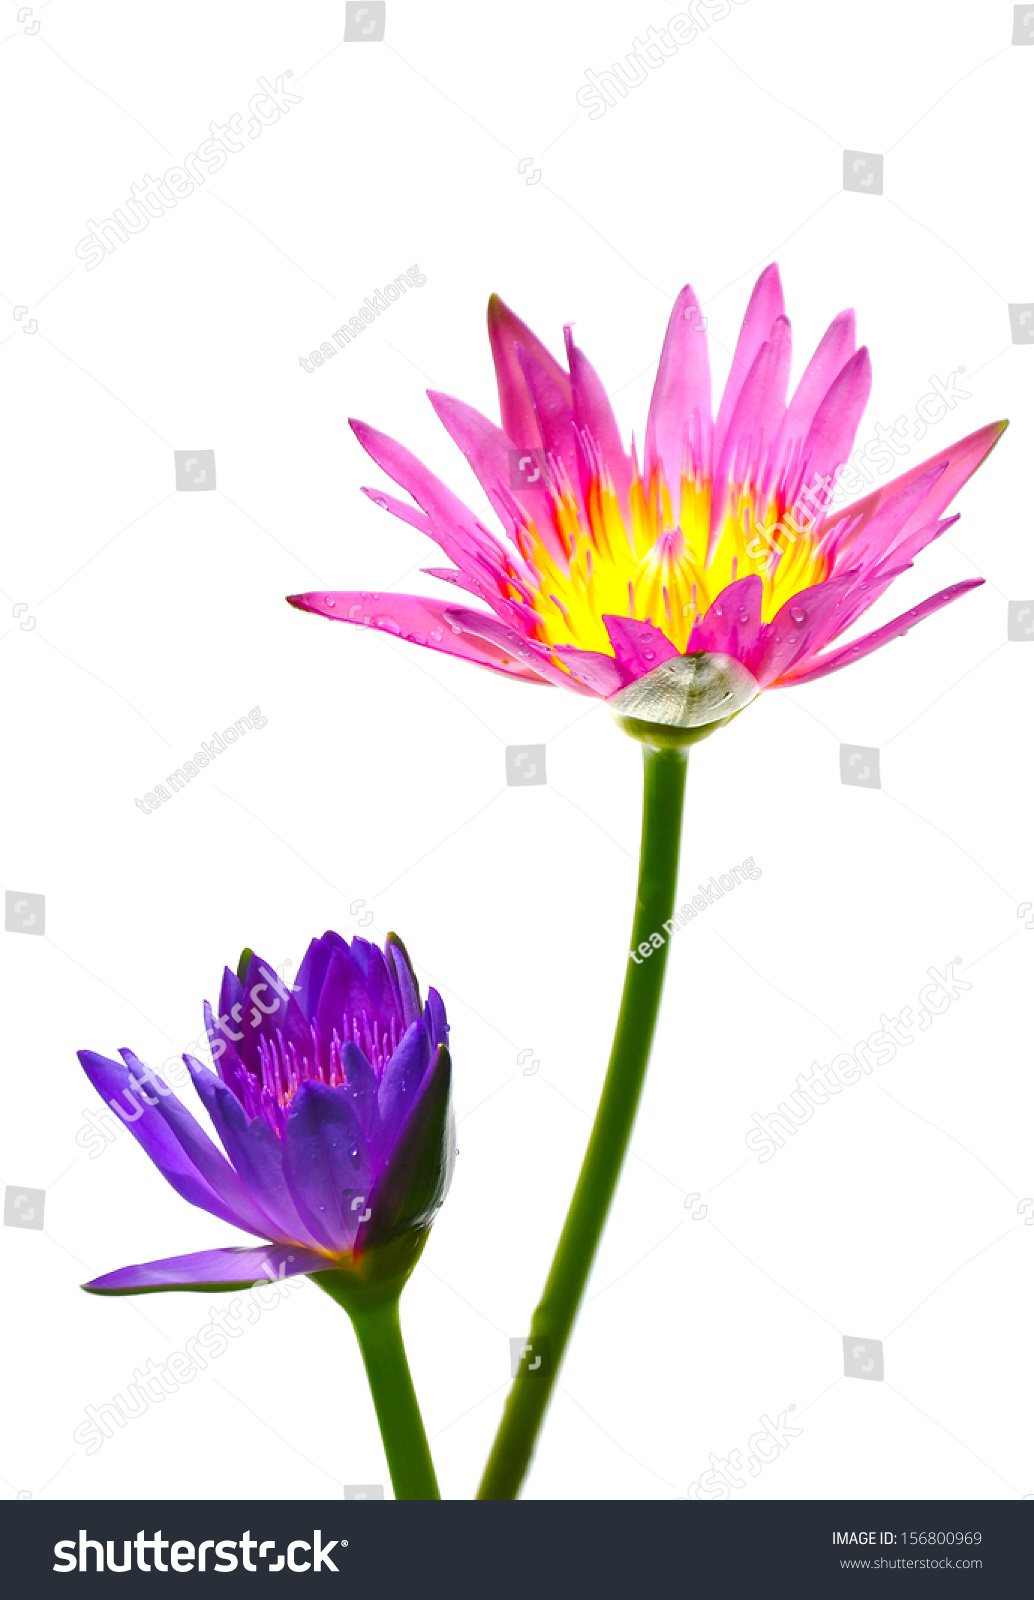 Royalty Free Pink Water Lily Flower Lotus And 156800969 Stock